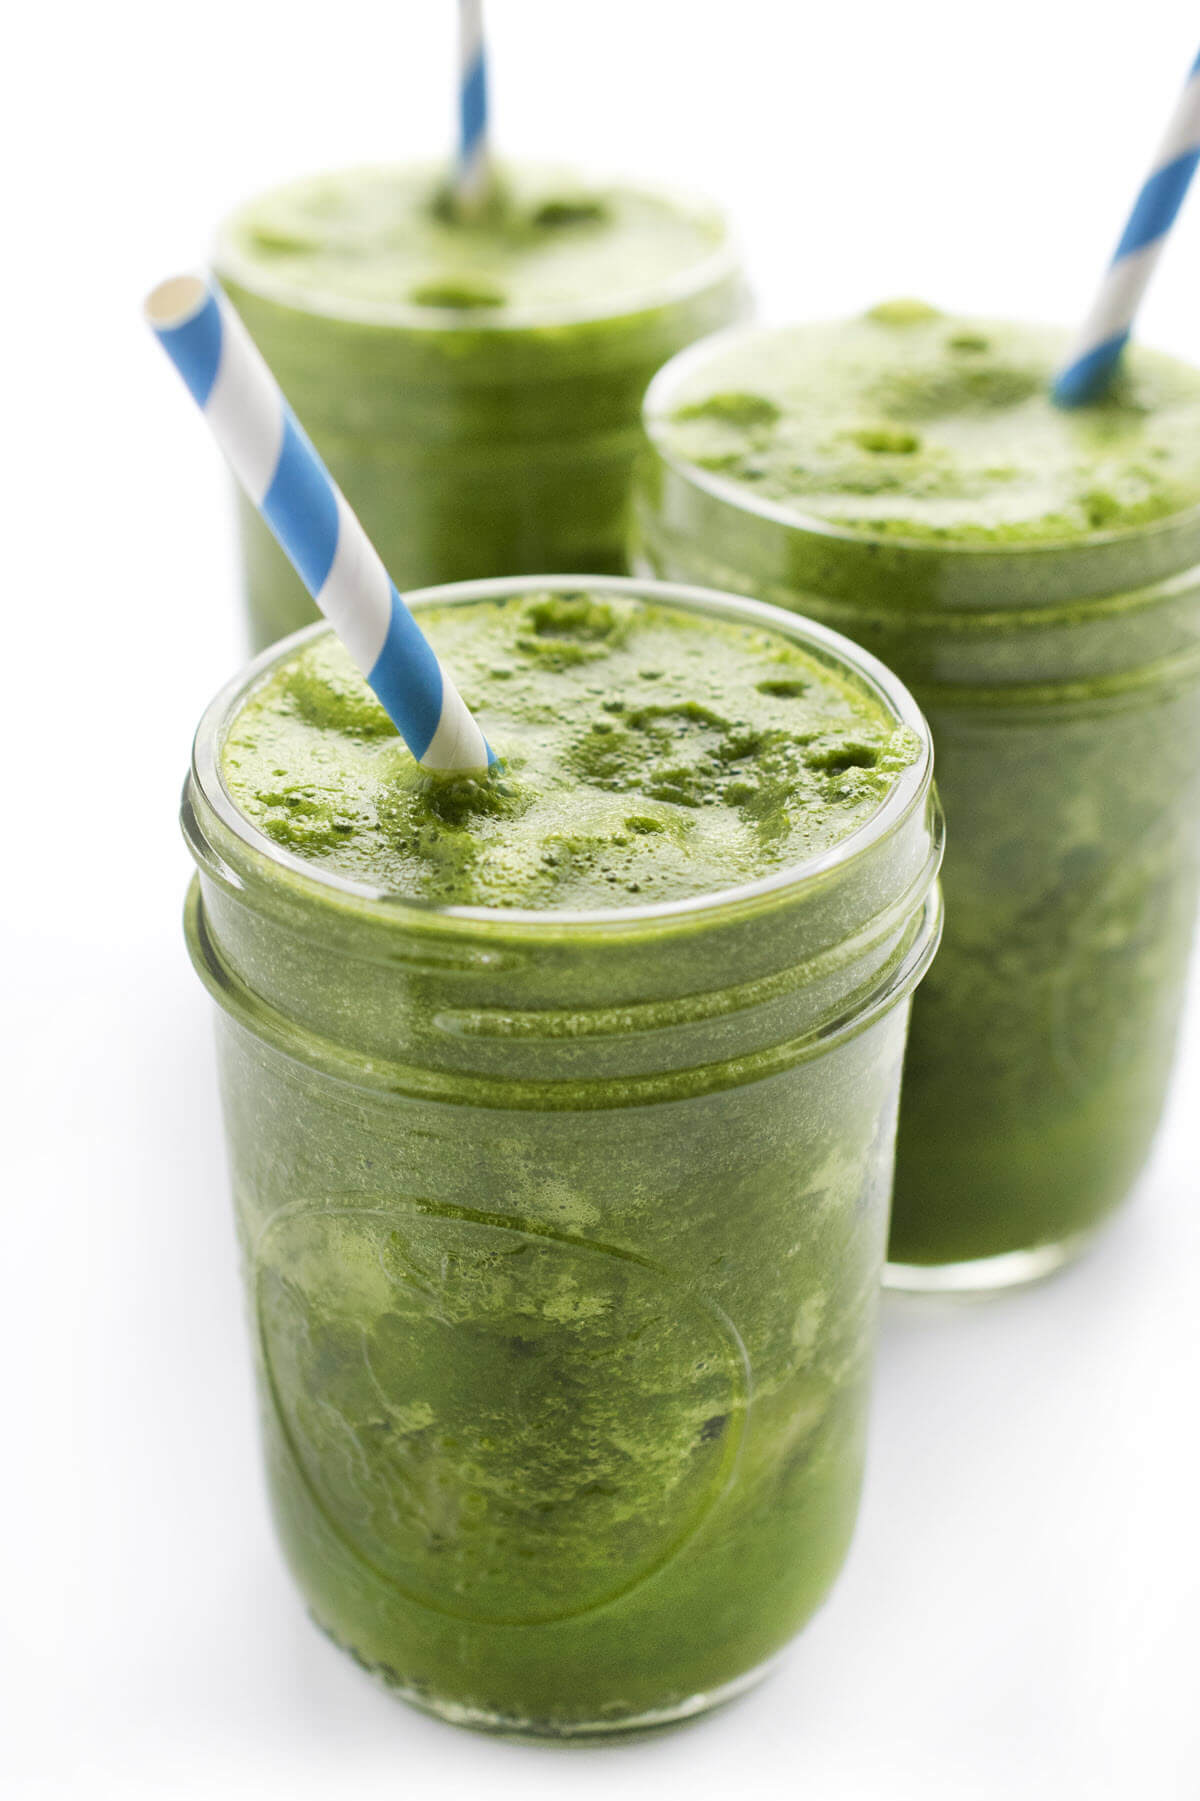 Green Smoothie recipe in a glass